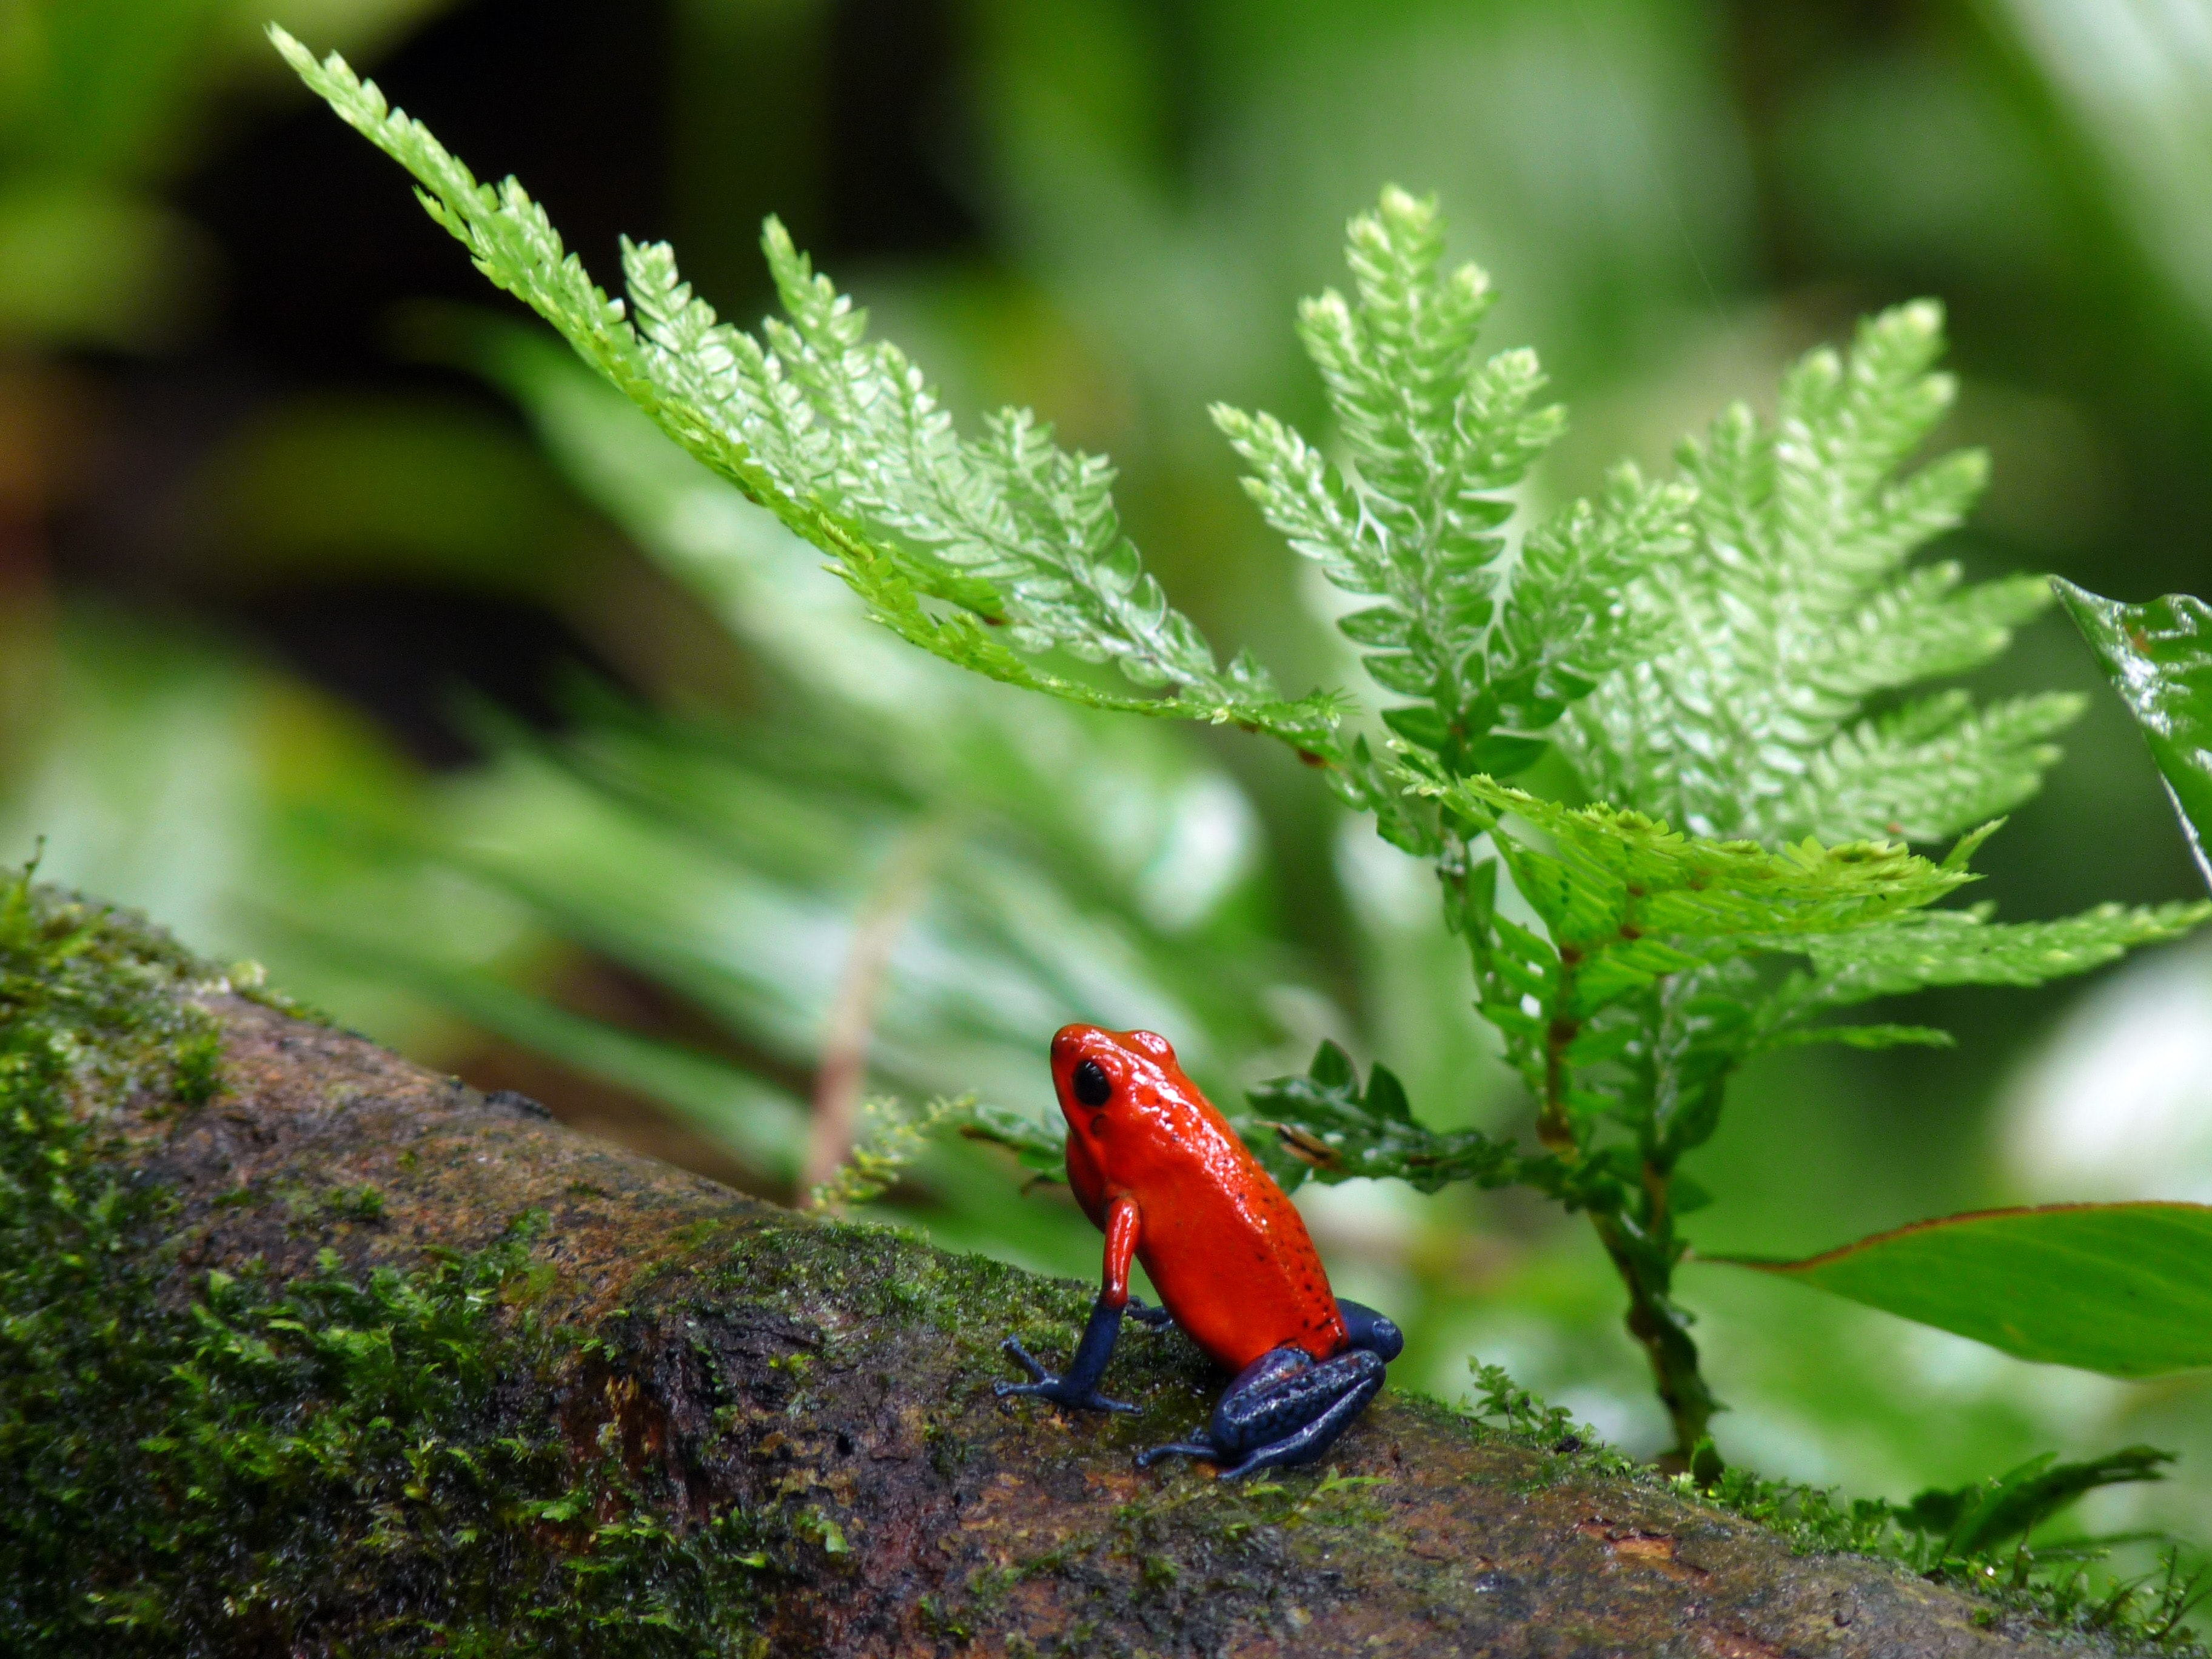 red and blue poison-dart frog on tree branch